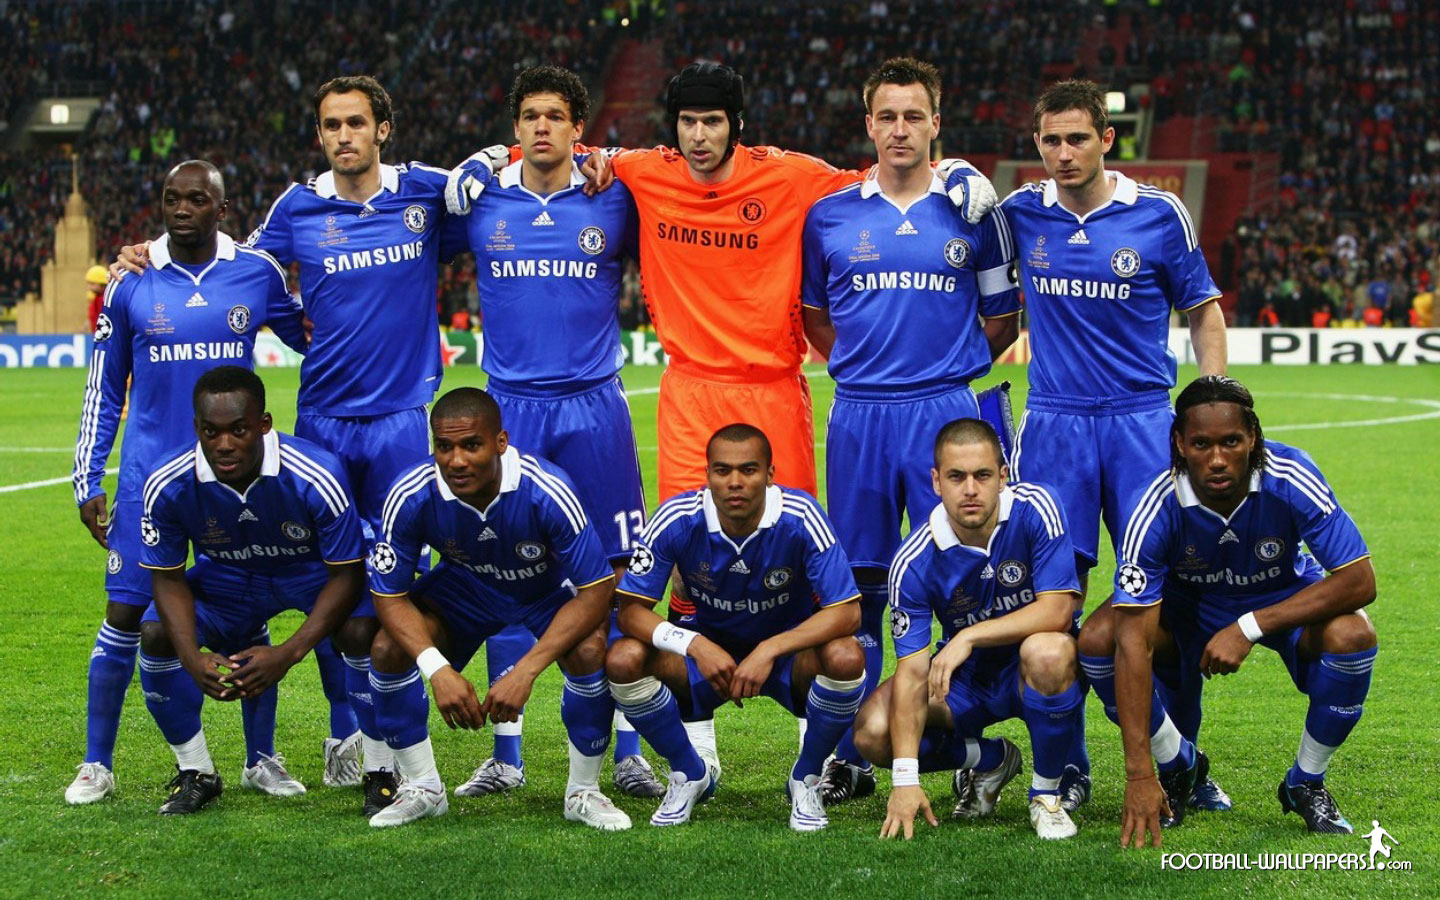 Chelsea football wallpapers ~ Football wallpapers